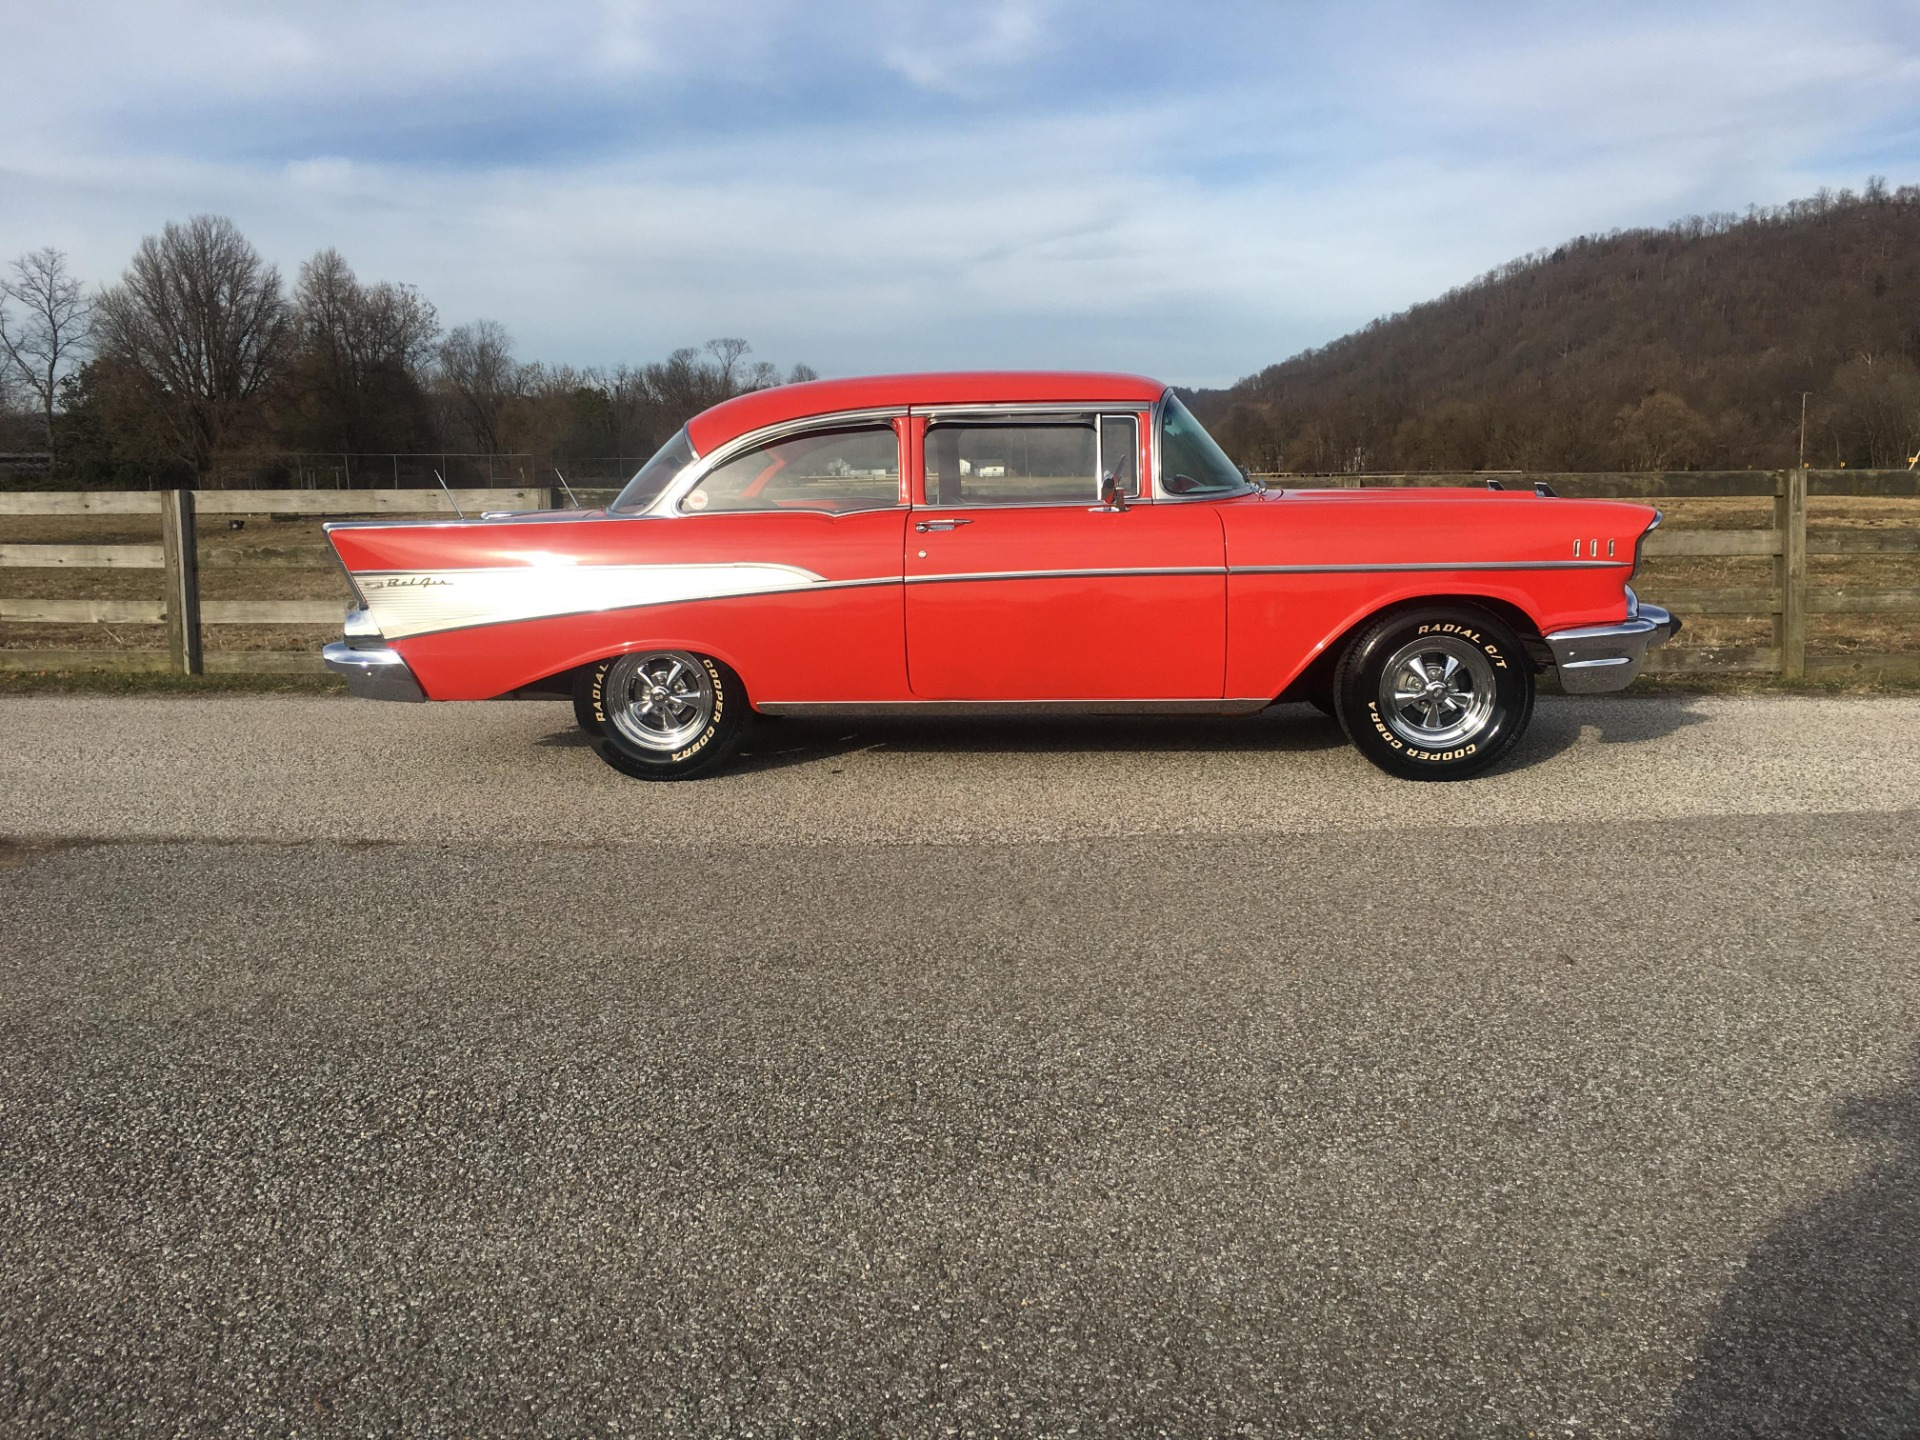 Used 1957 Chevrolet Bel Air -AIR CONDITIONING-700 R4 TRANS-DRIVER READY-VIDEO | Mundelein, IL